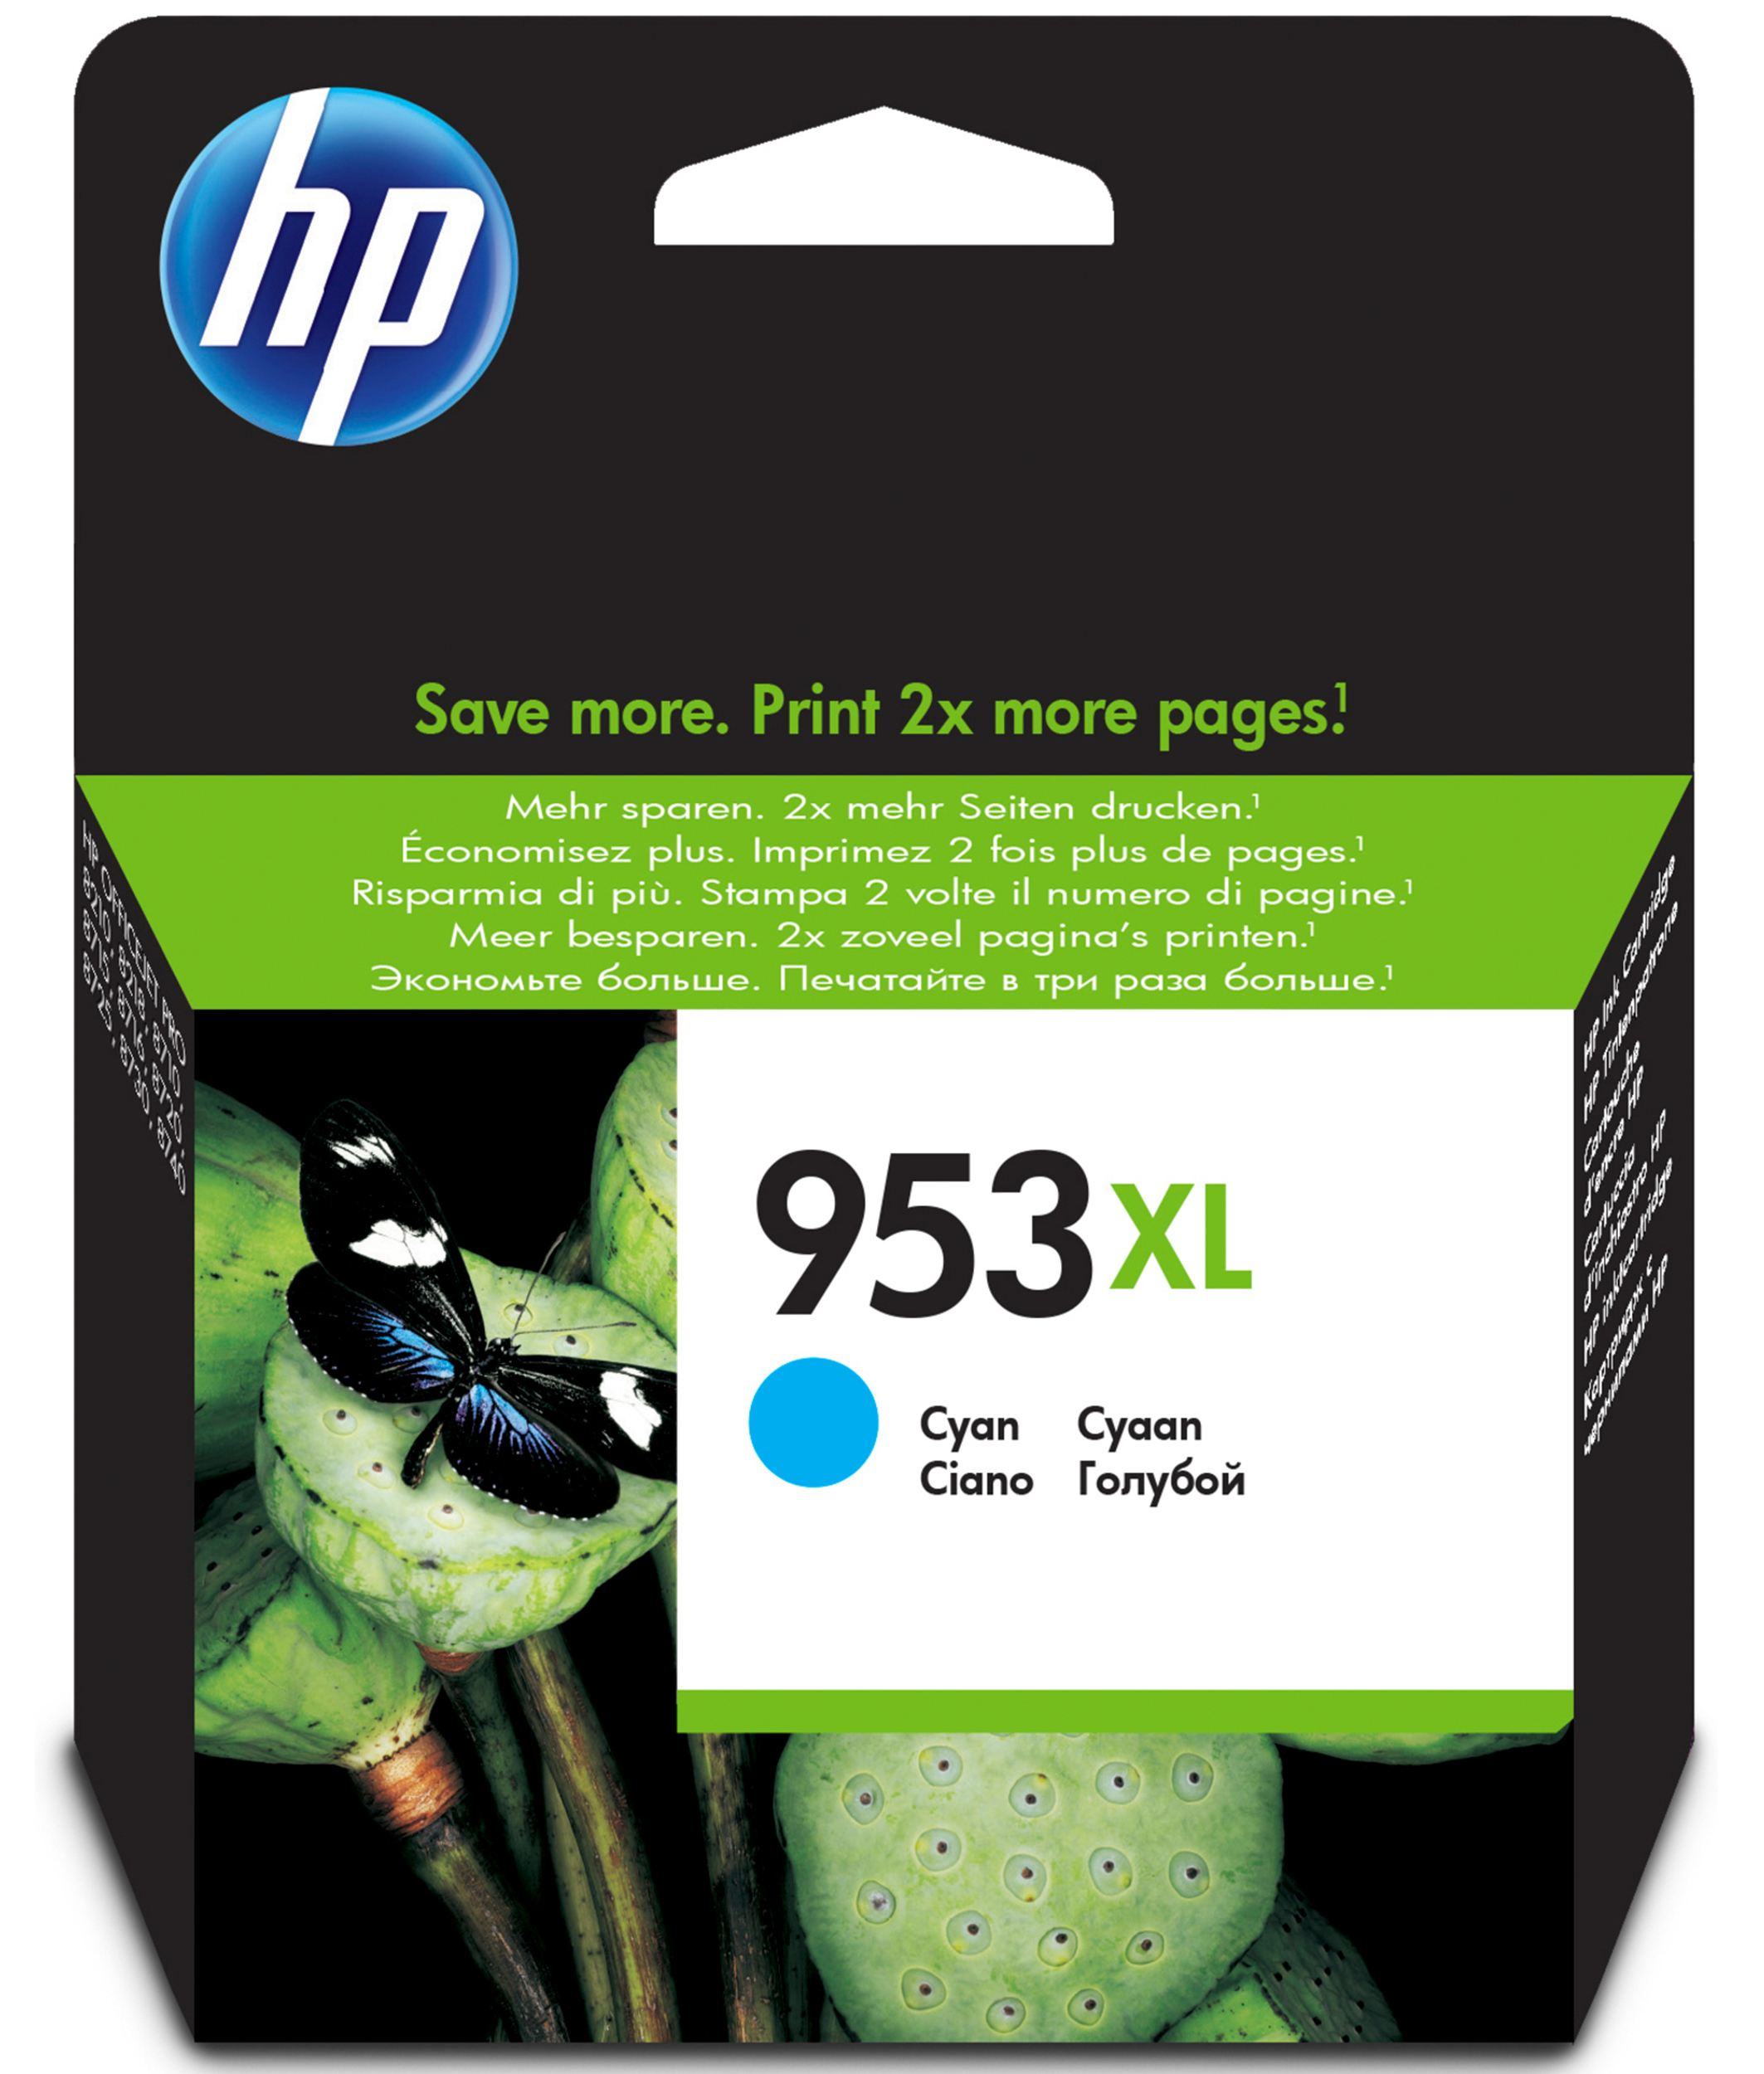 Hpf6u16ae      Hp 953xl Cyan Ink Cartridge    High Yield                                                   - UF01